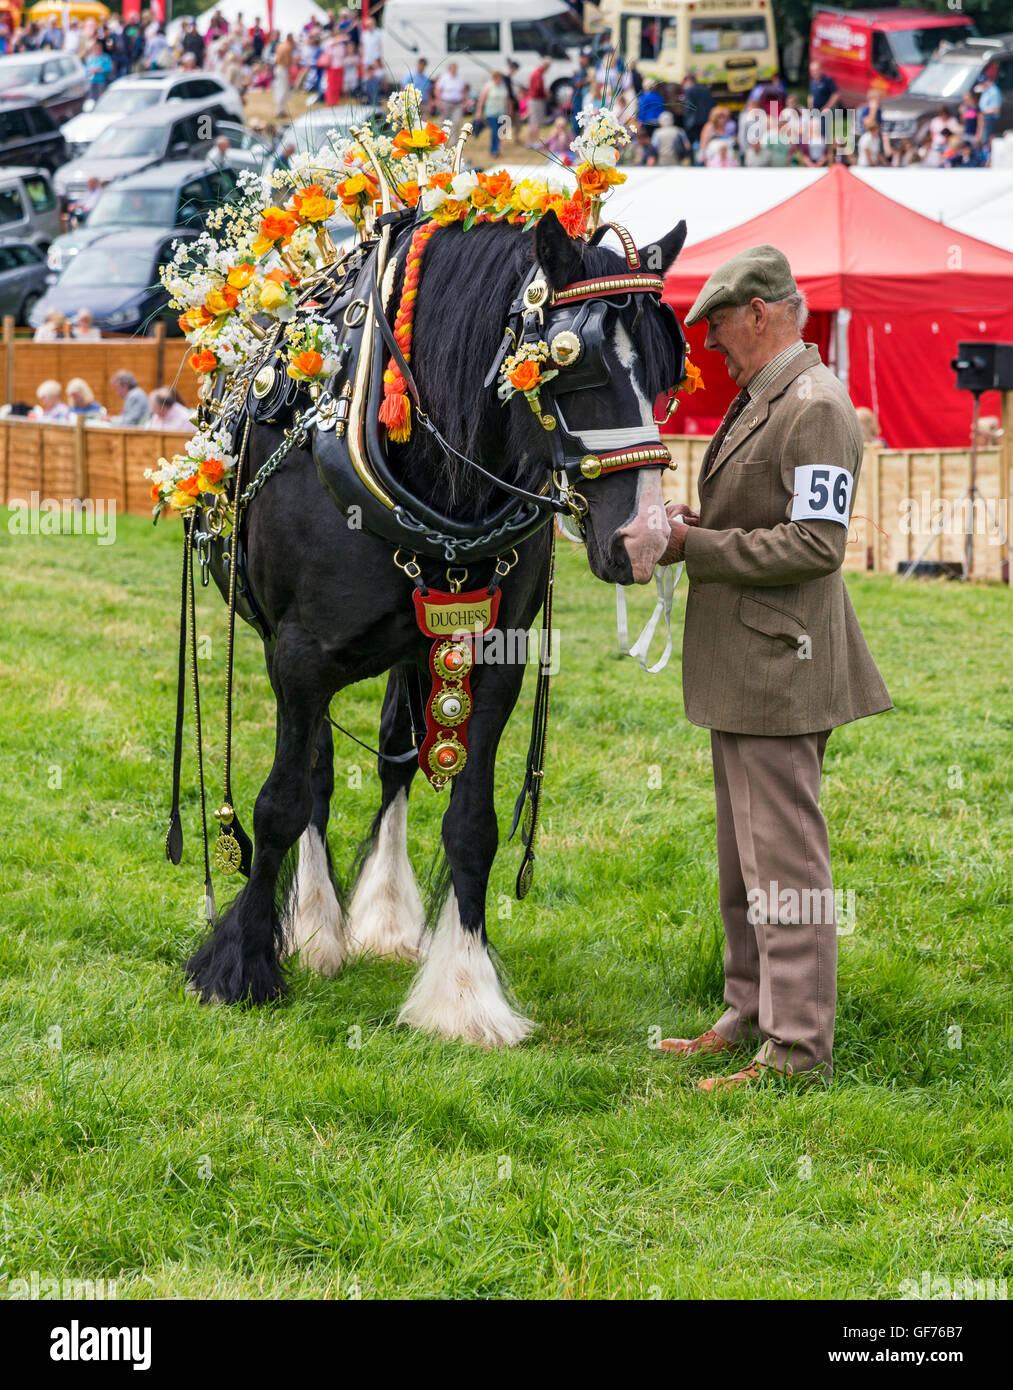 Decorated heavy horses at Ryedale show - Stock Image